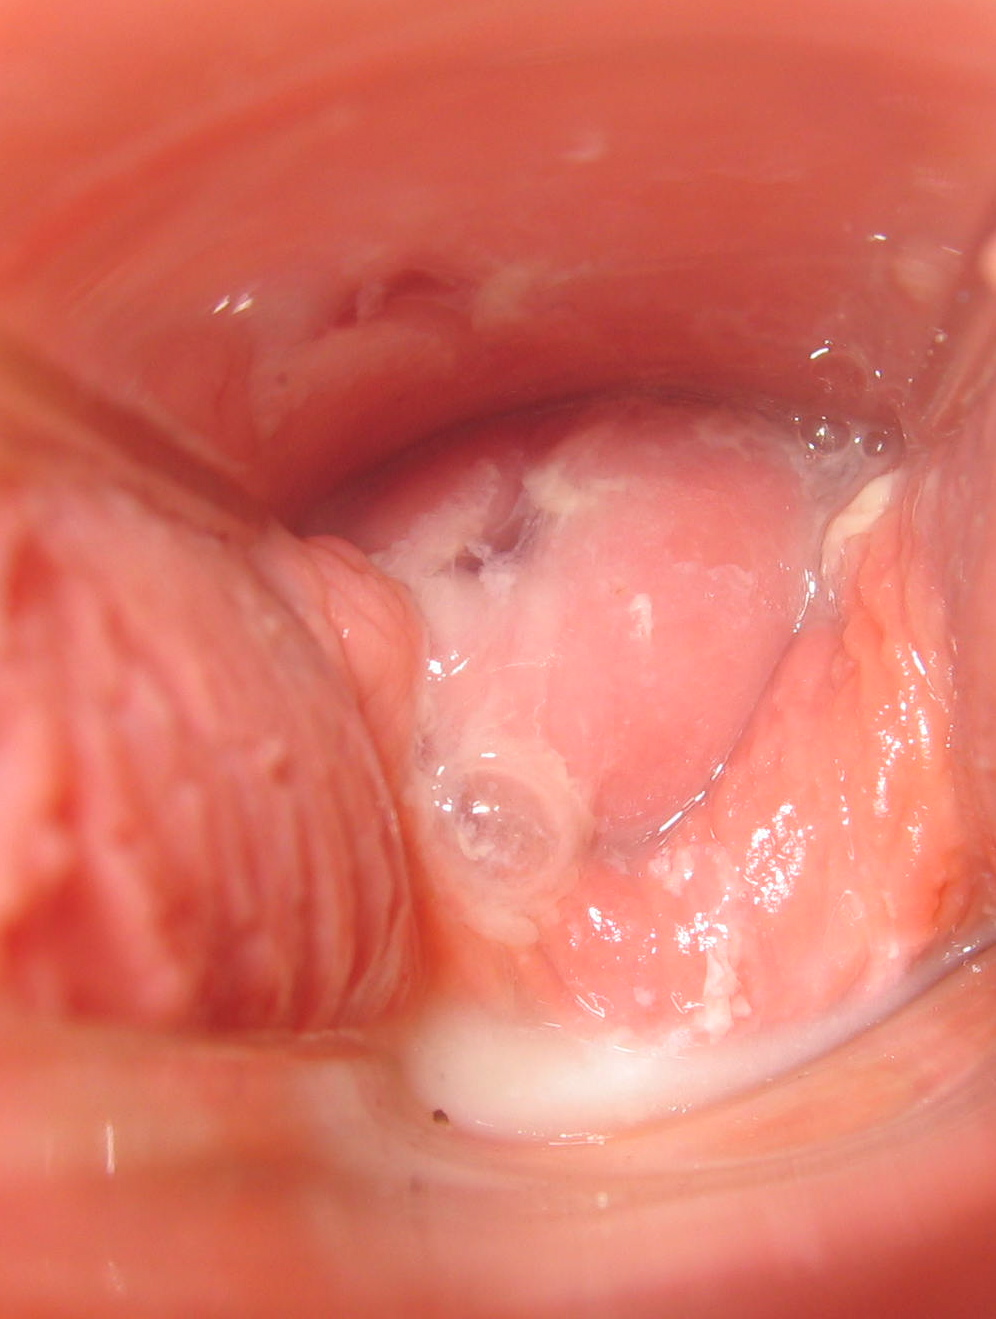 Cervix wet vagina soft early pregnancy